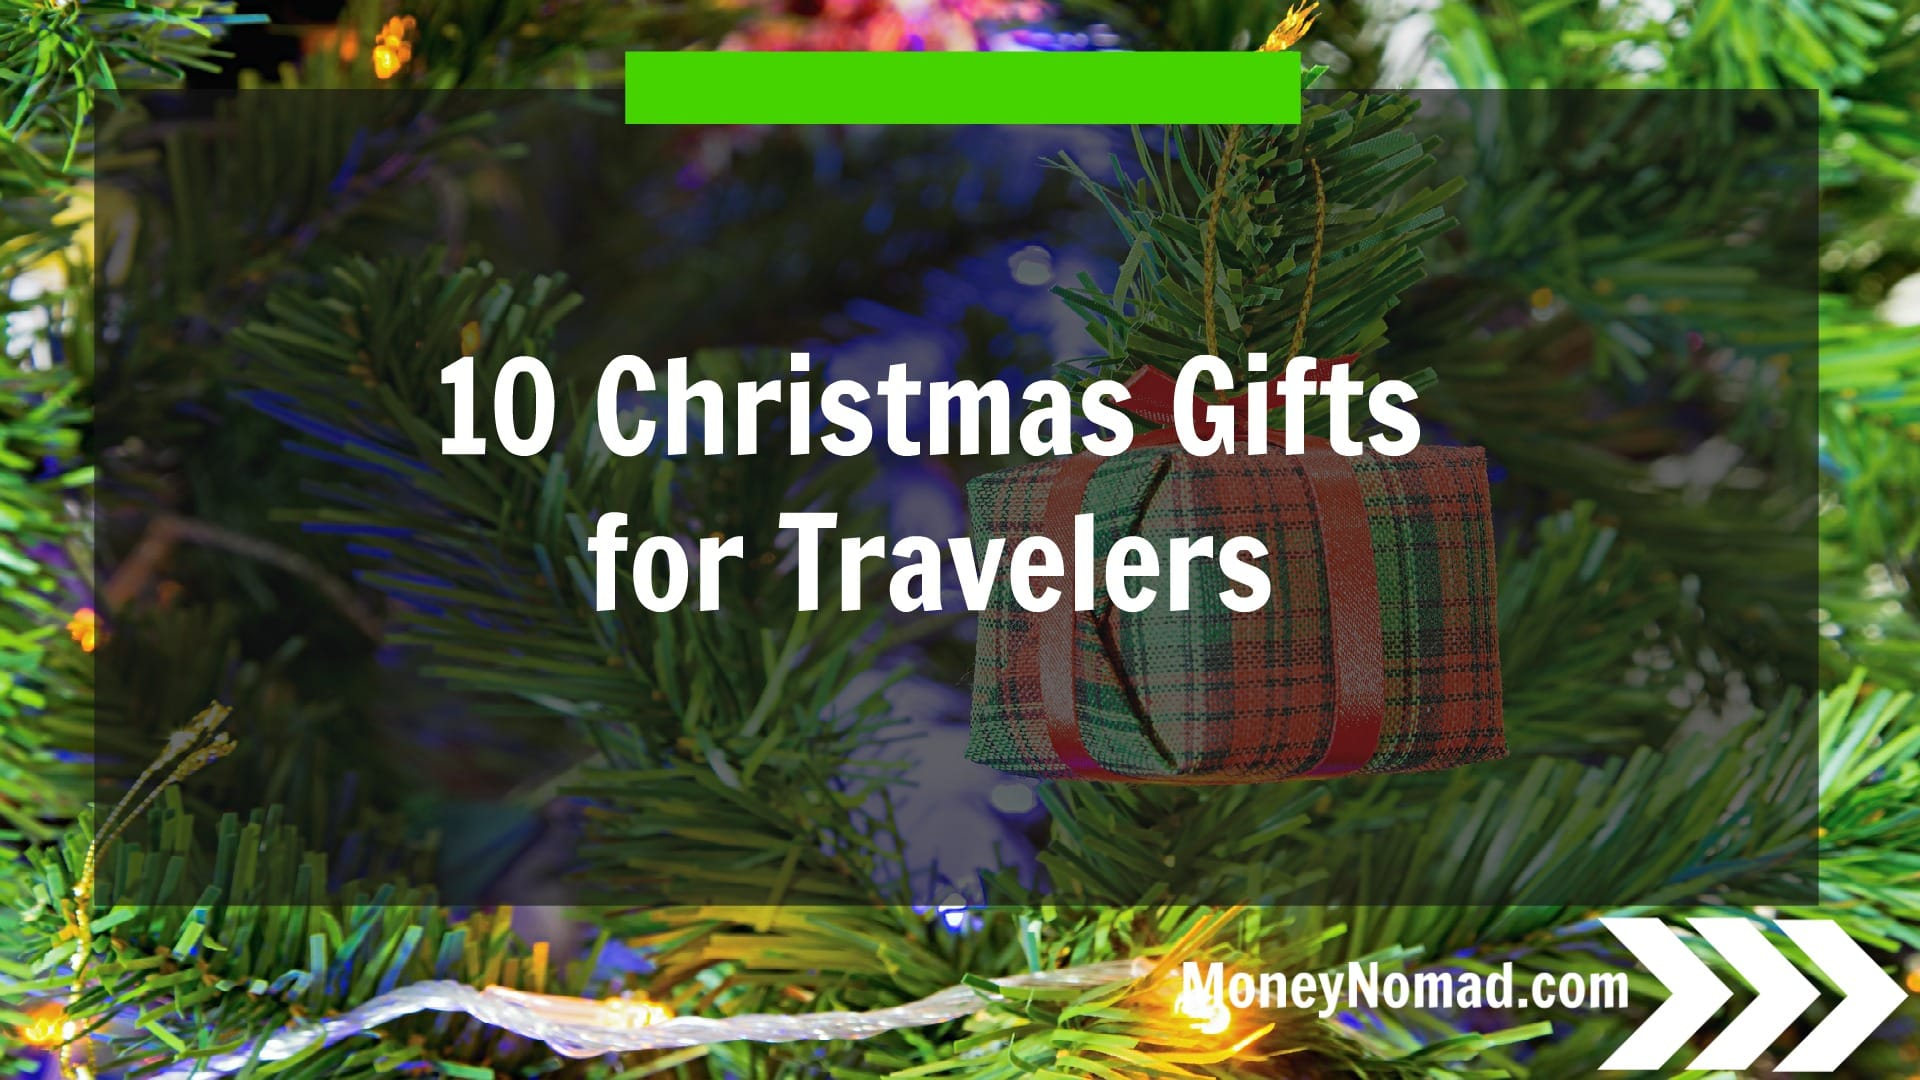 The 10 best christmas gifts for travelers money nomad for Christmas gifts for travelers